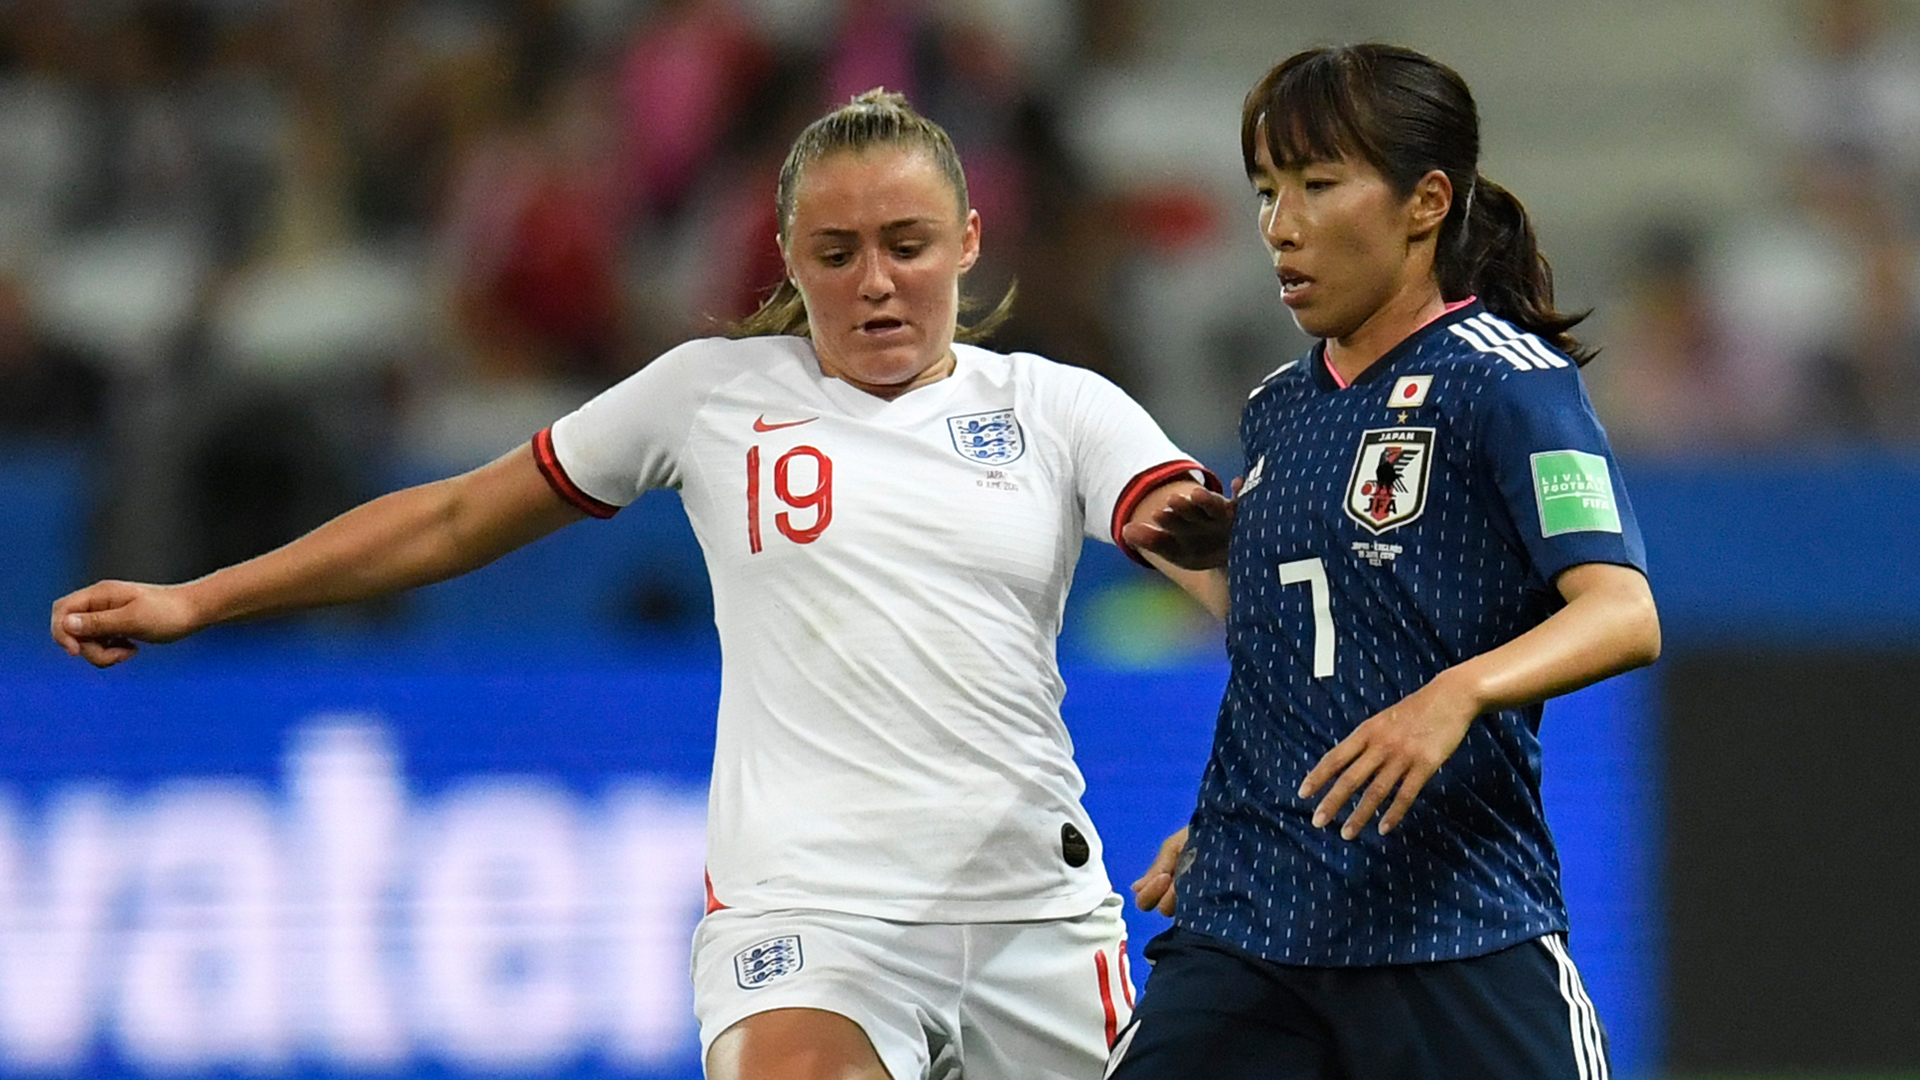 England women vs Cameroon women: TV channel, live stream